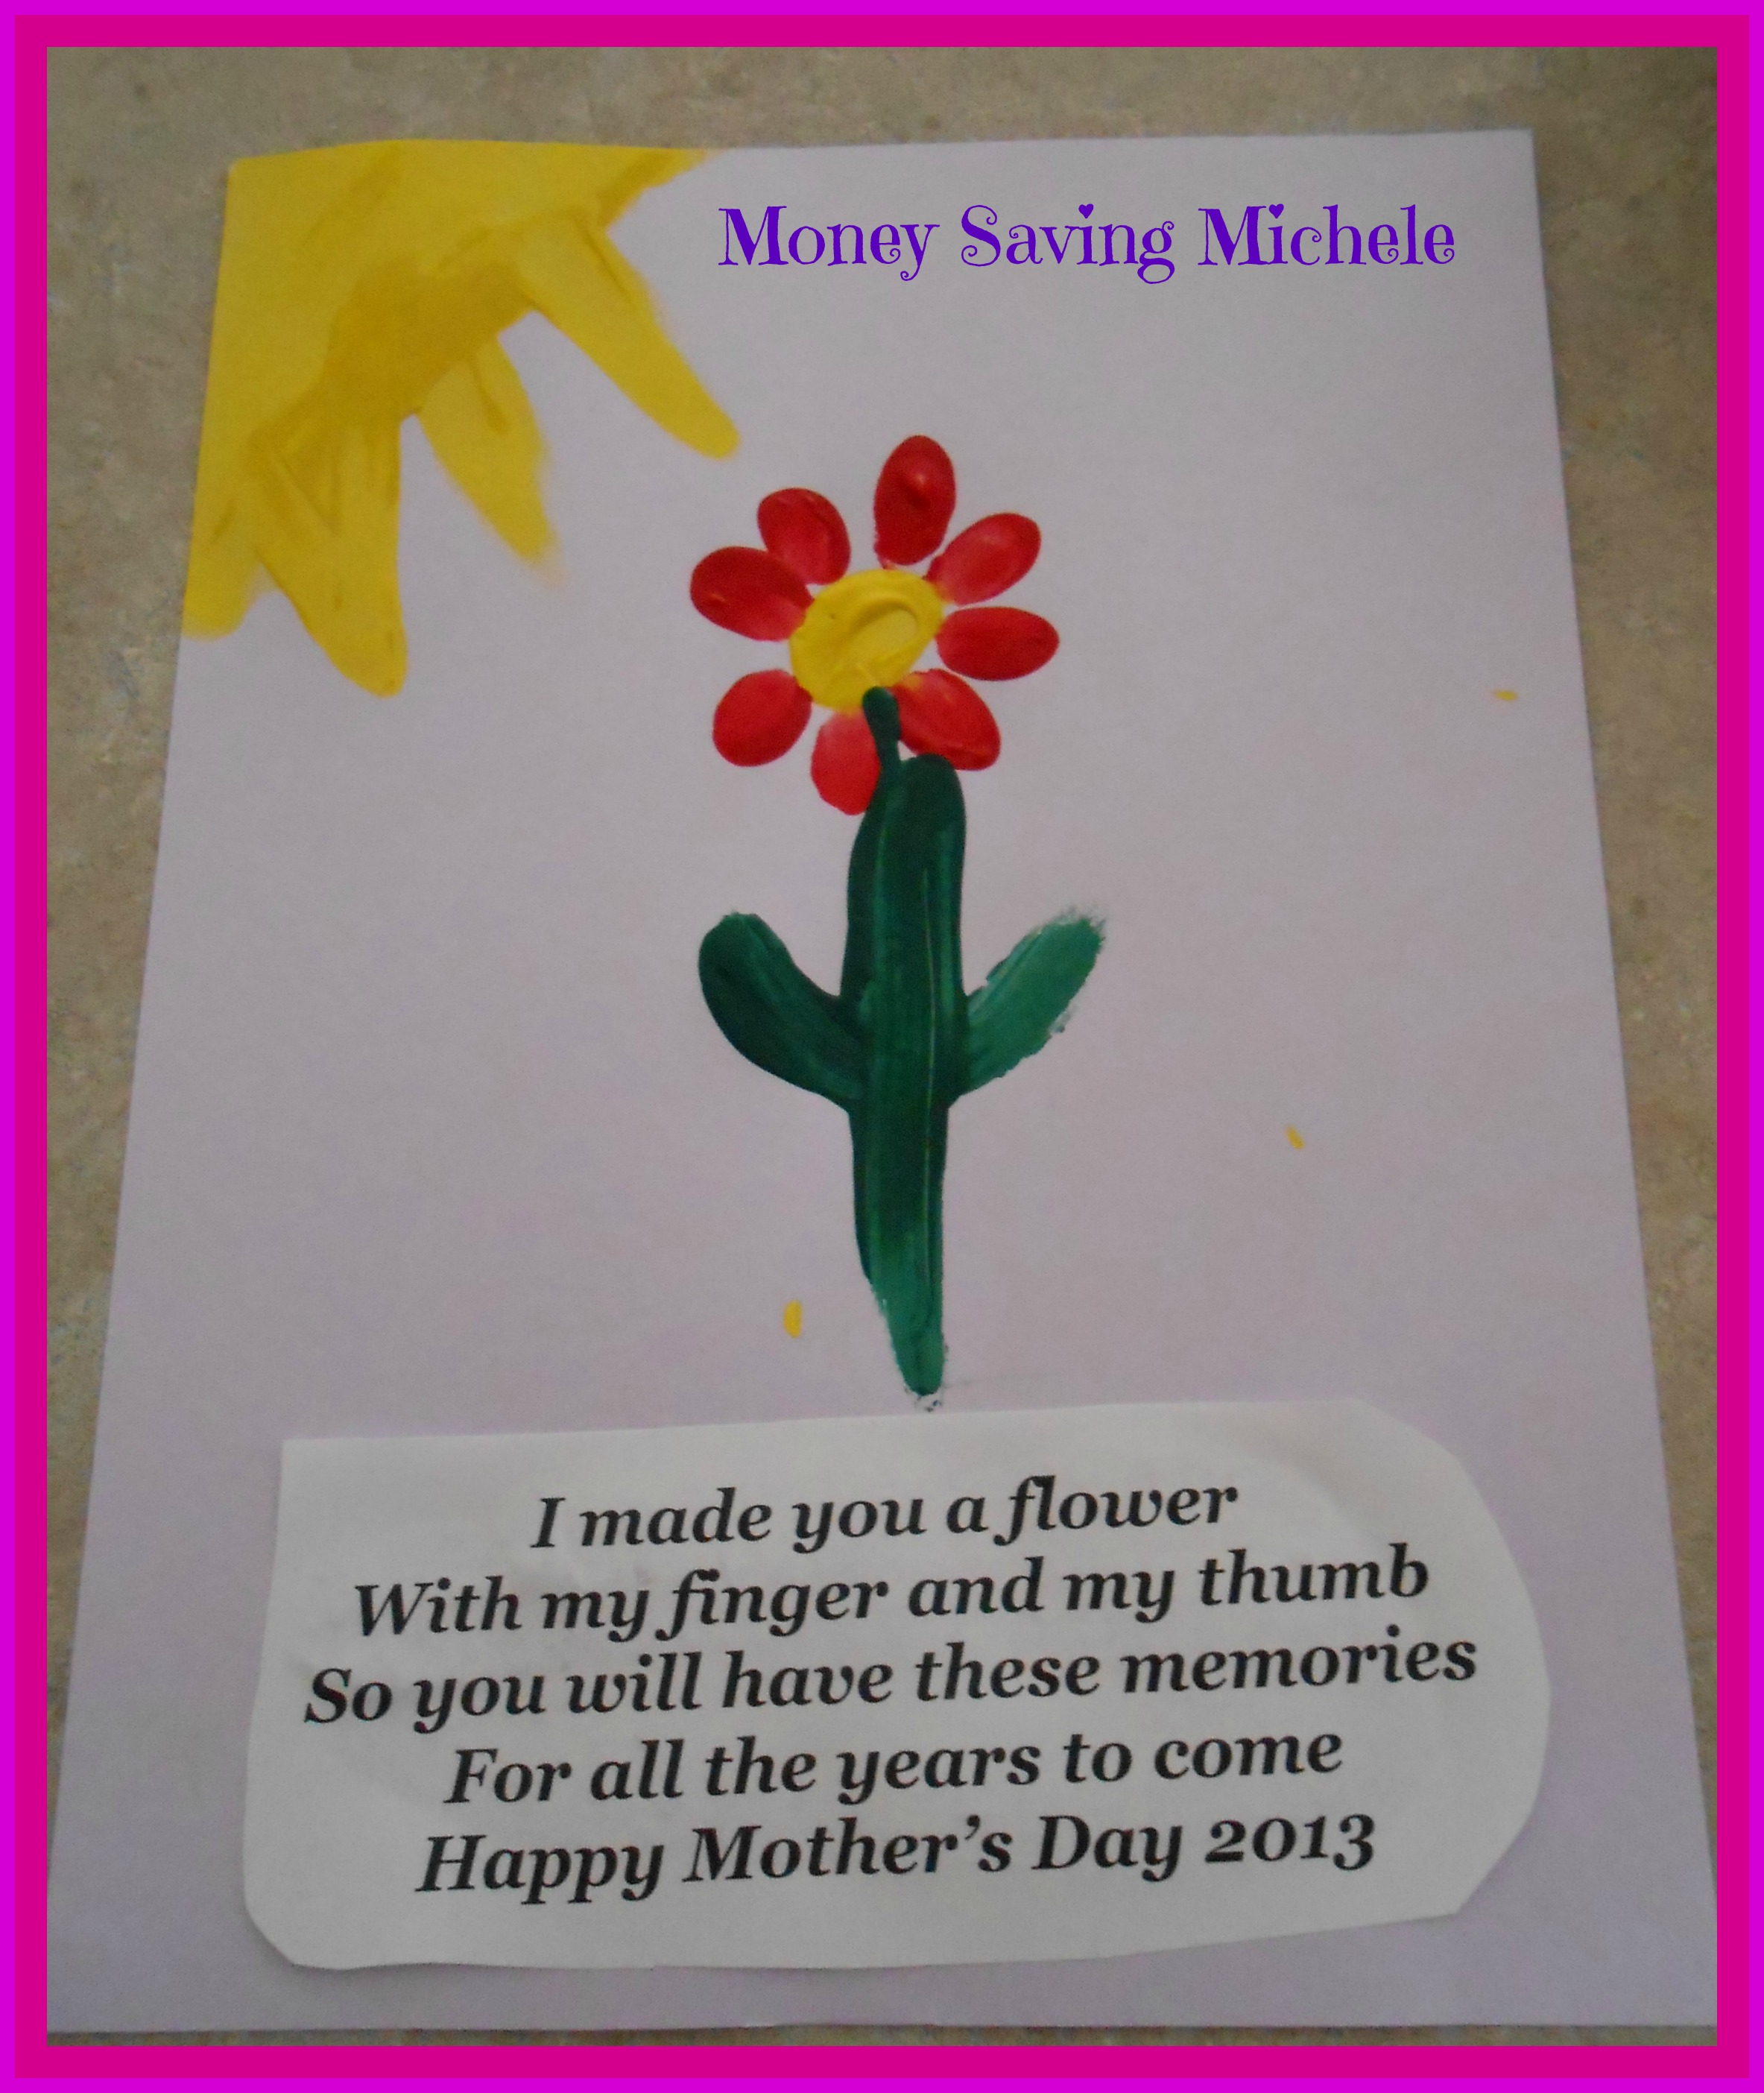 Mother's Day Craft for Kids- Fingerprint Flower - Money $aving Michele